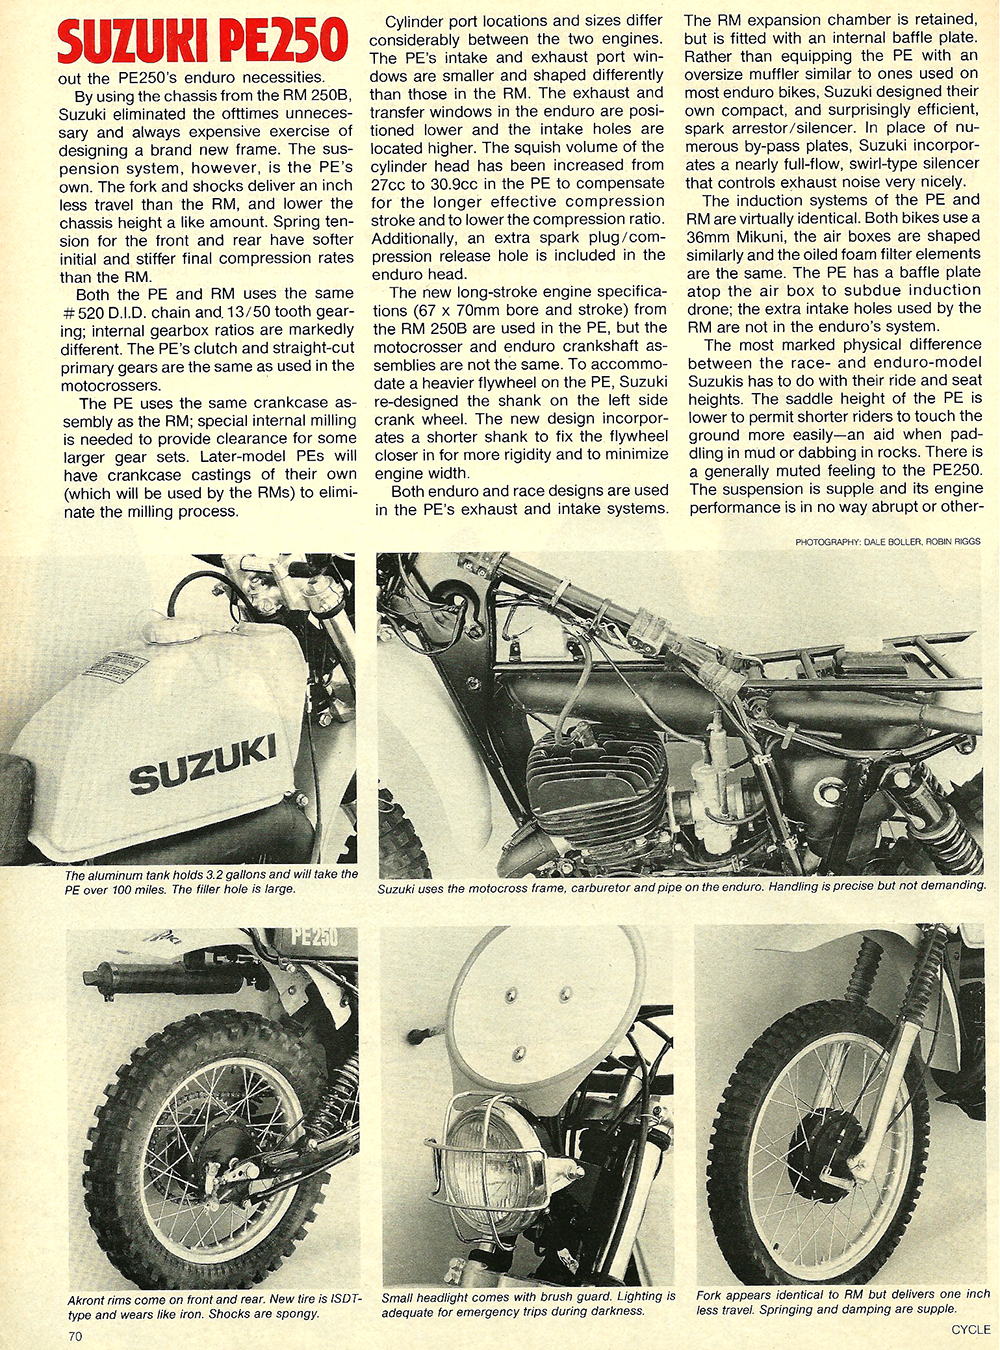 1977 Suzuki PE250 road test 3.jpg